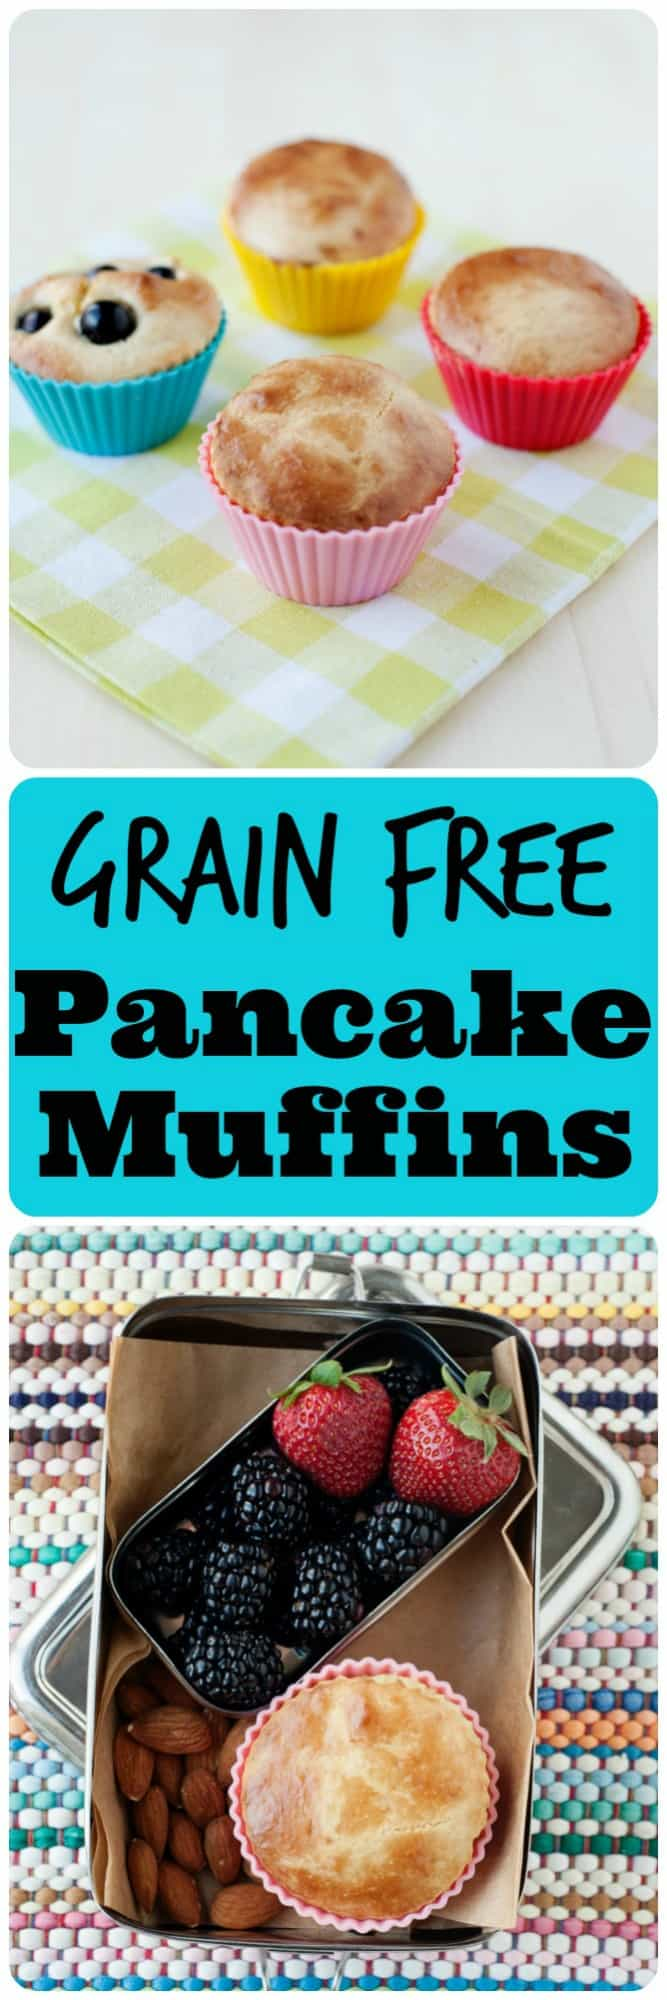 On the hunt for a portable breakfast, free of gluten & grains? The search is over! Our Grain Free Pancake Muffins are exactly what you've been looking for.